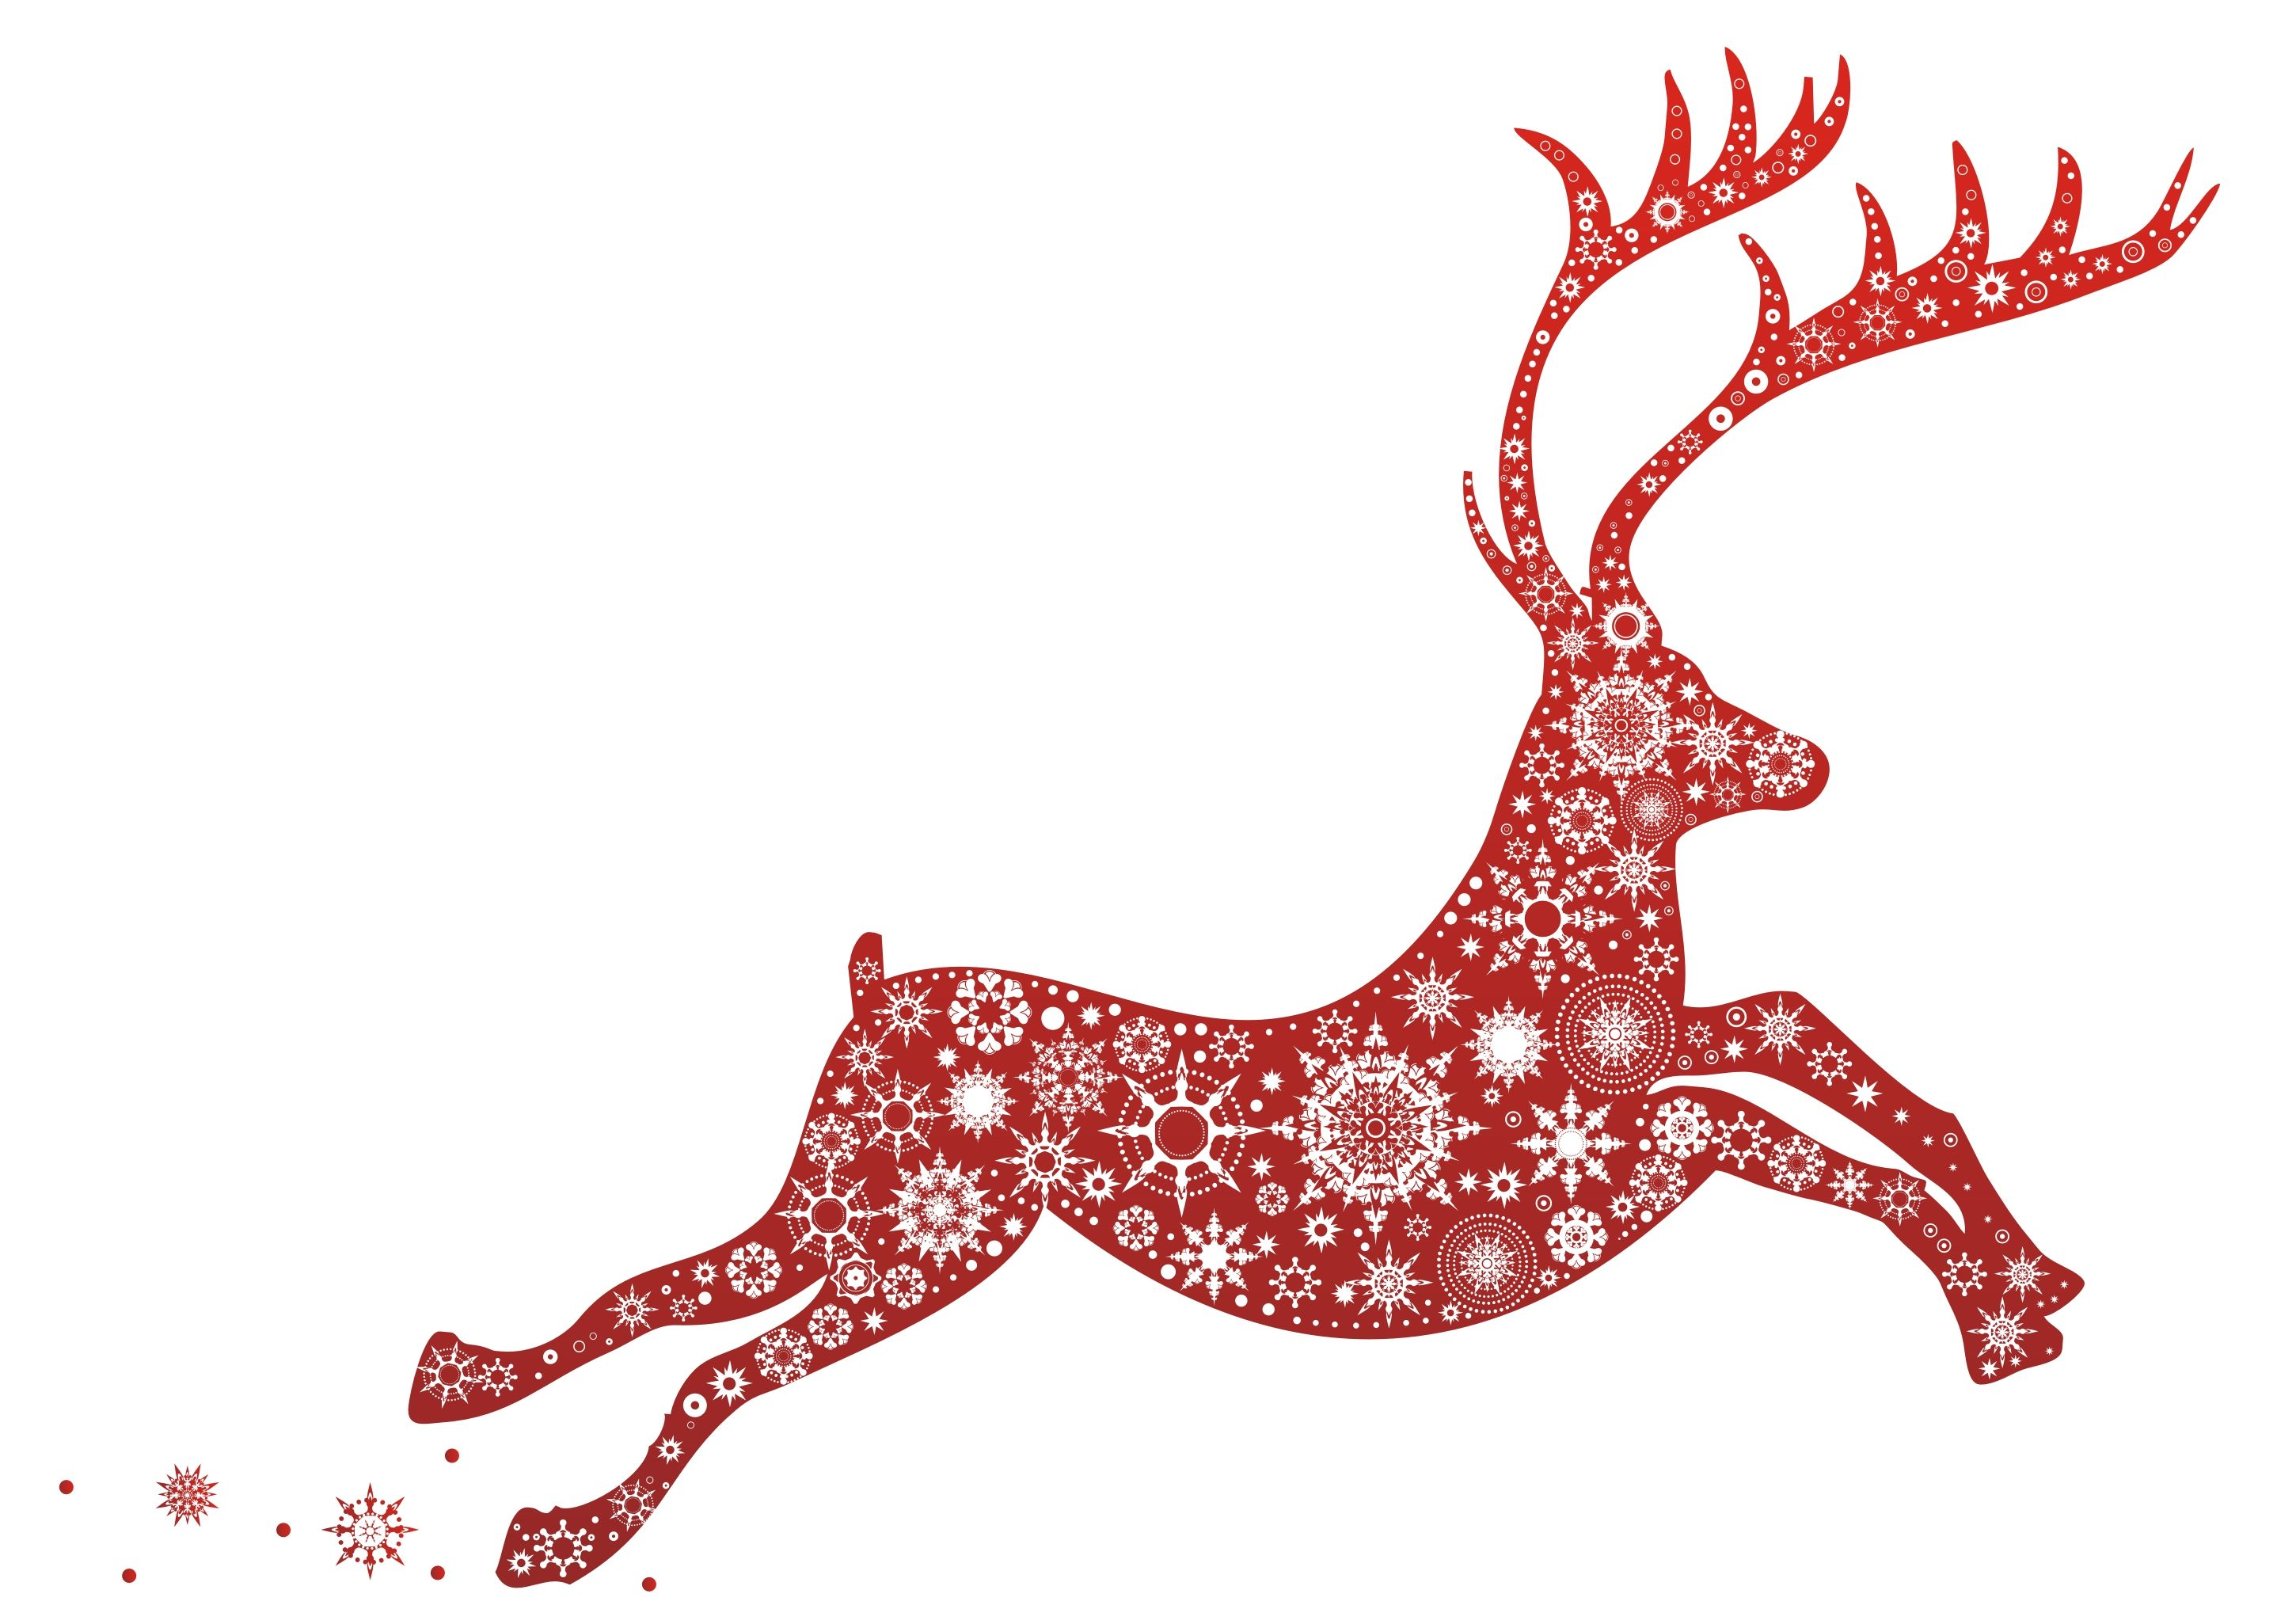 Red reindeer graphic filled with snowflakes pattern